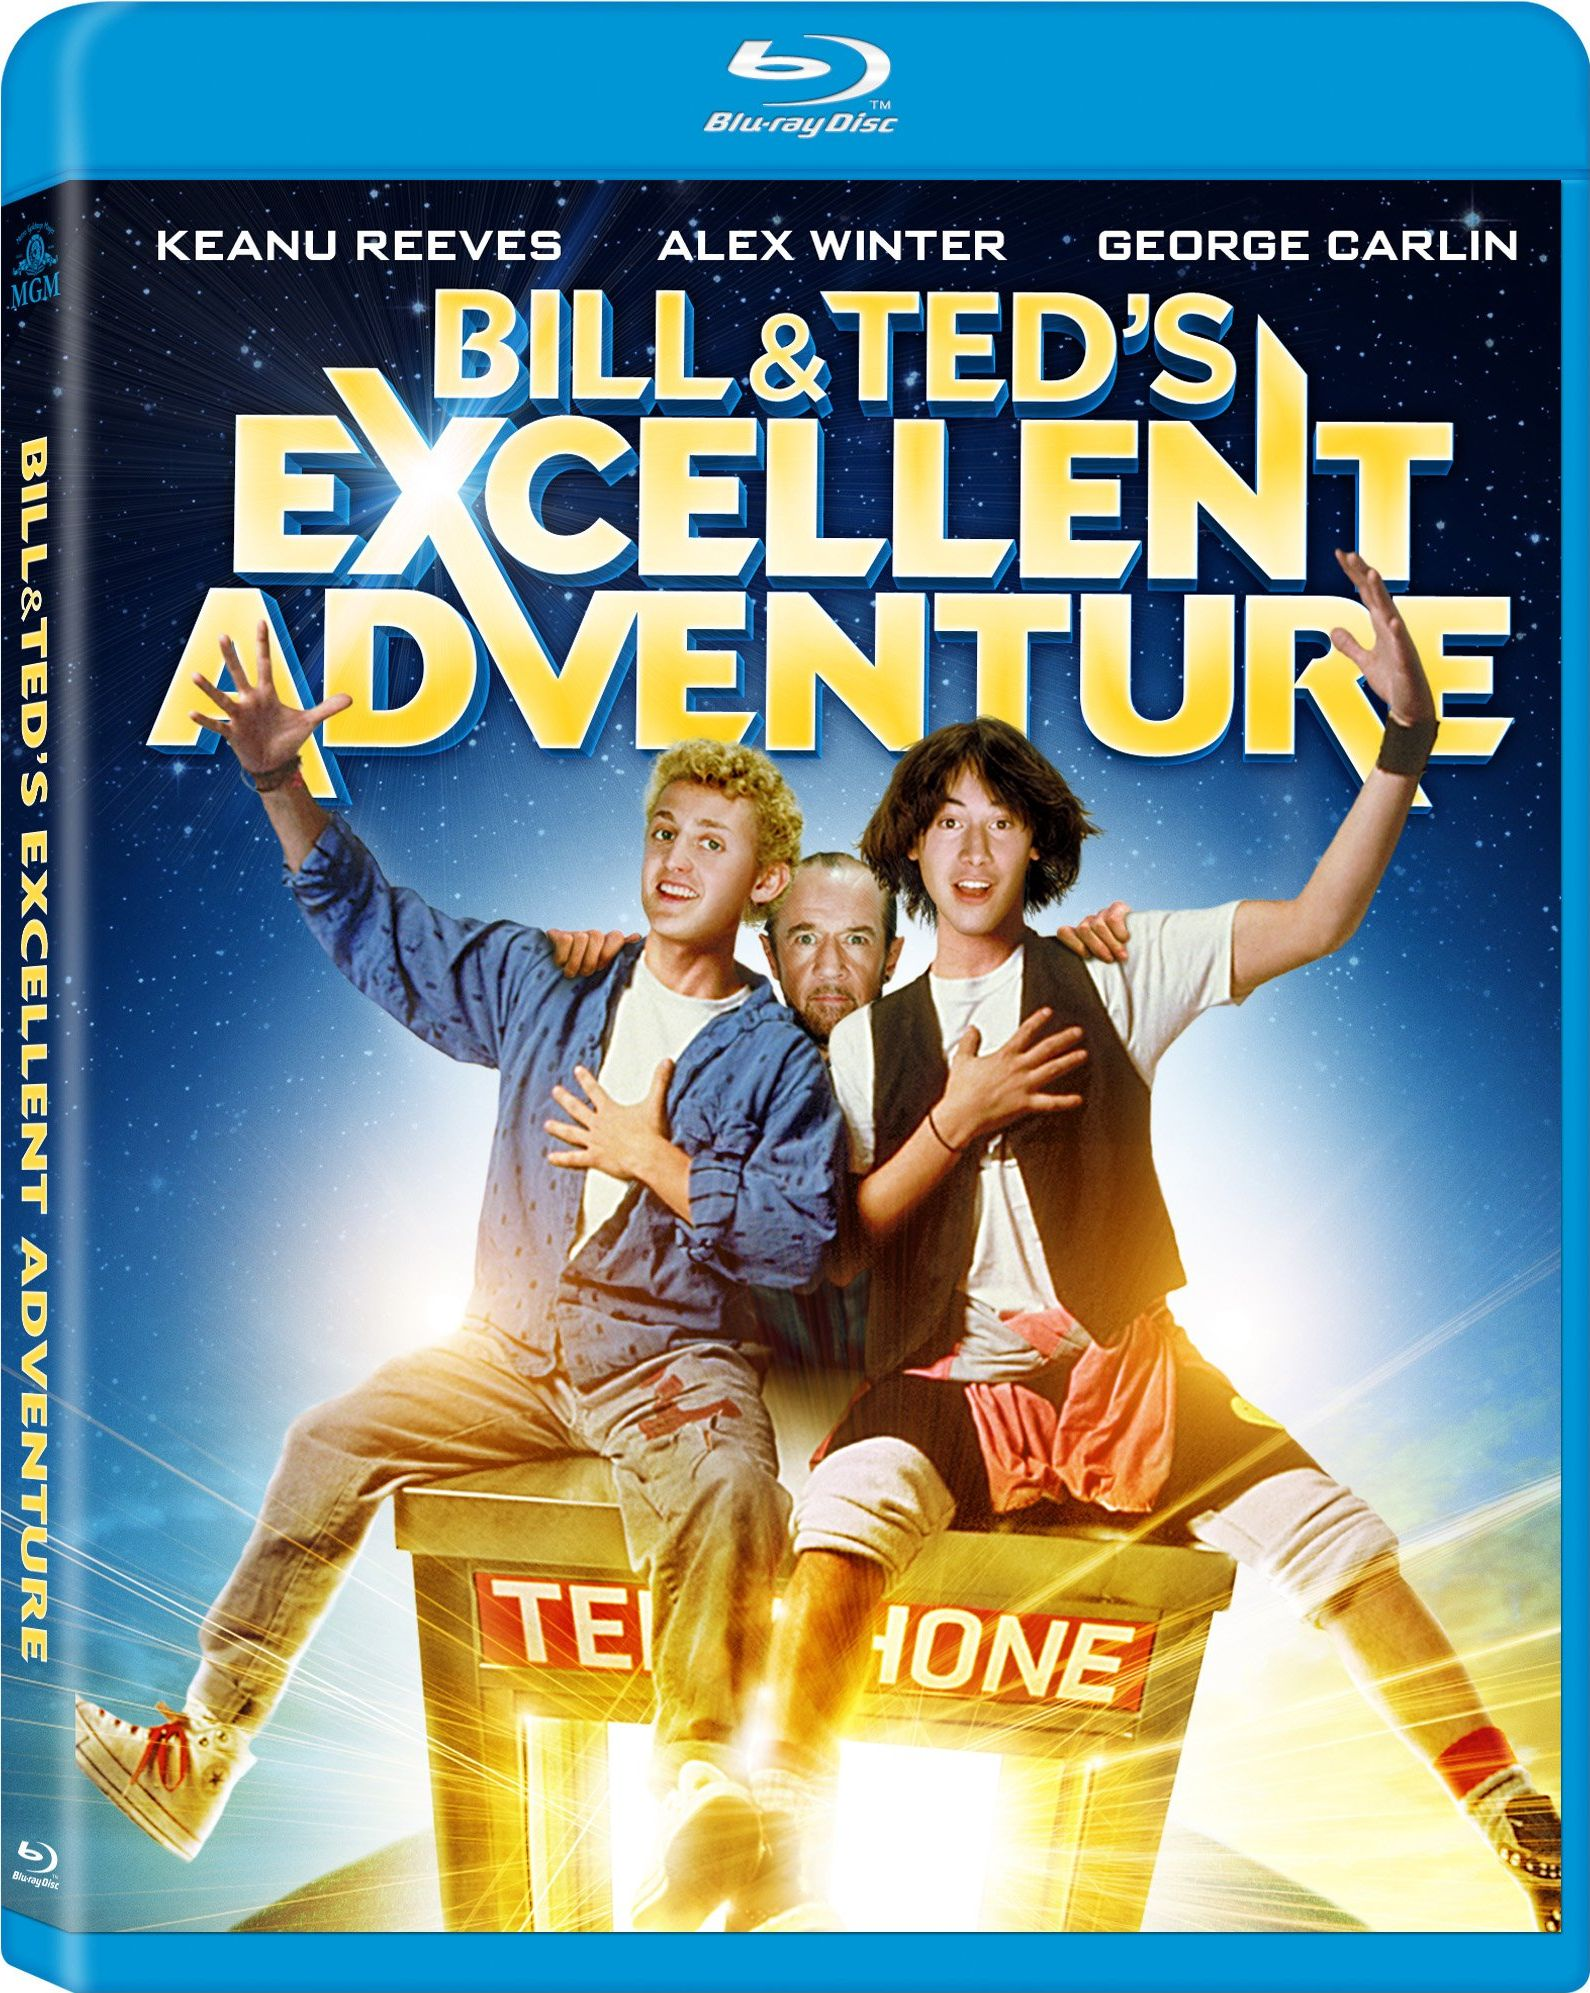 Amazing Bill & Ted's Excellent Adventure Pictures & Backgrounds